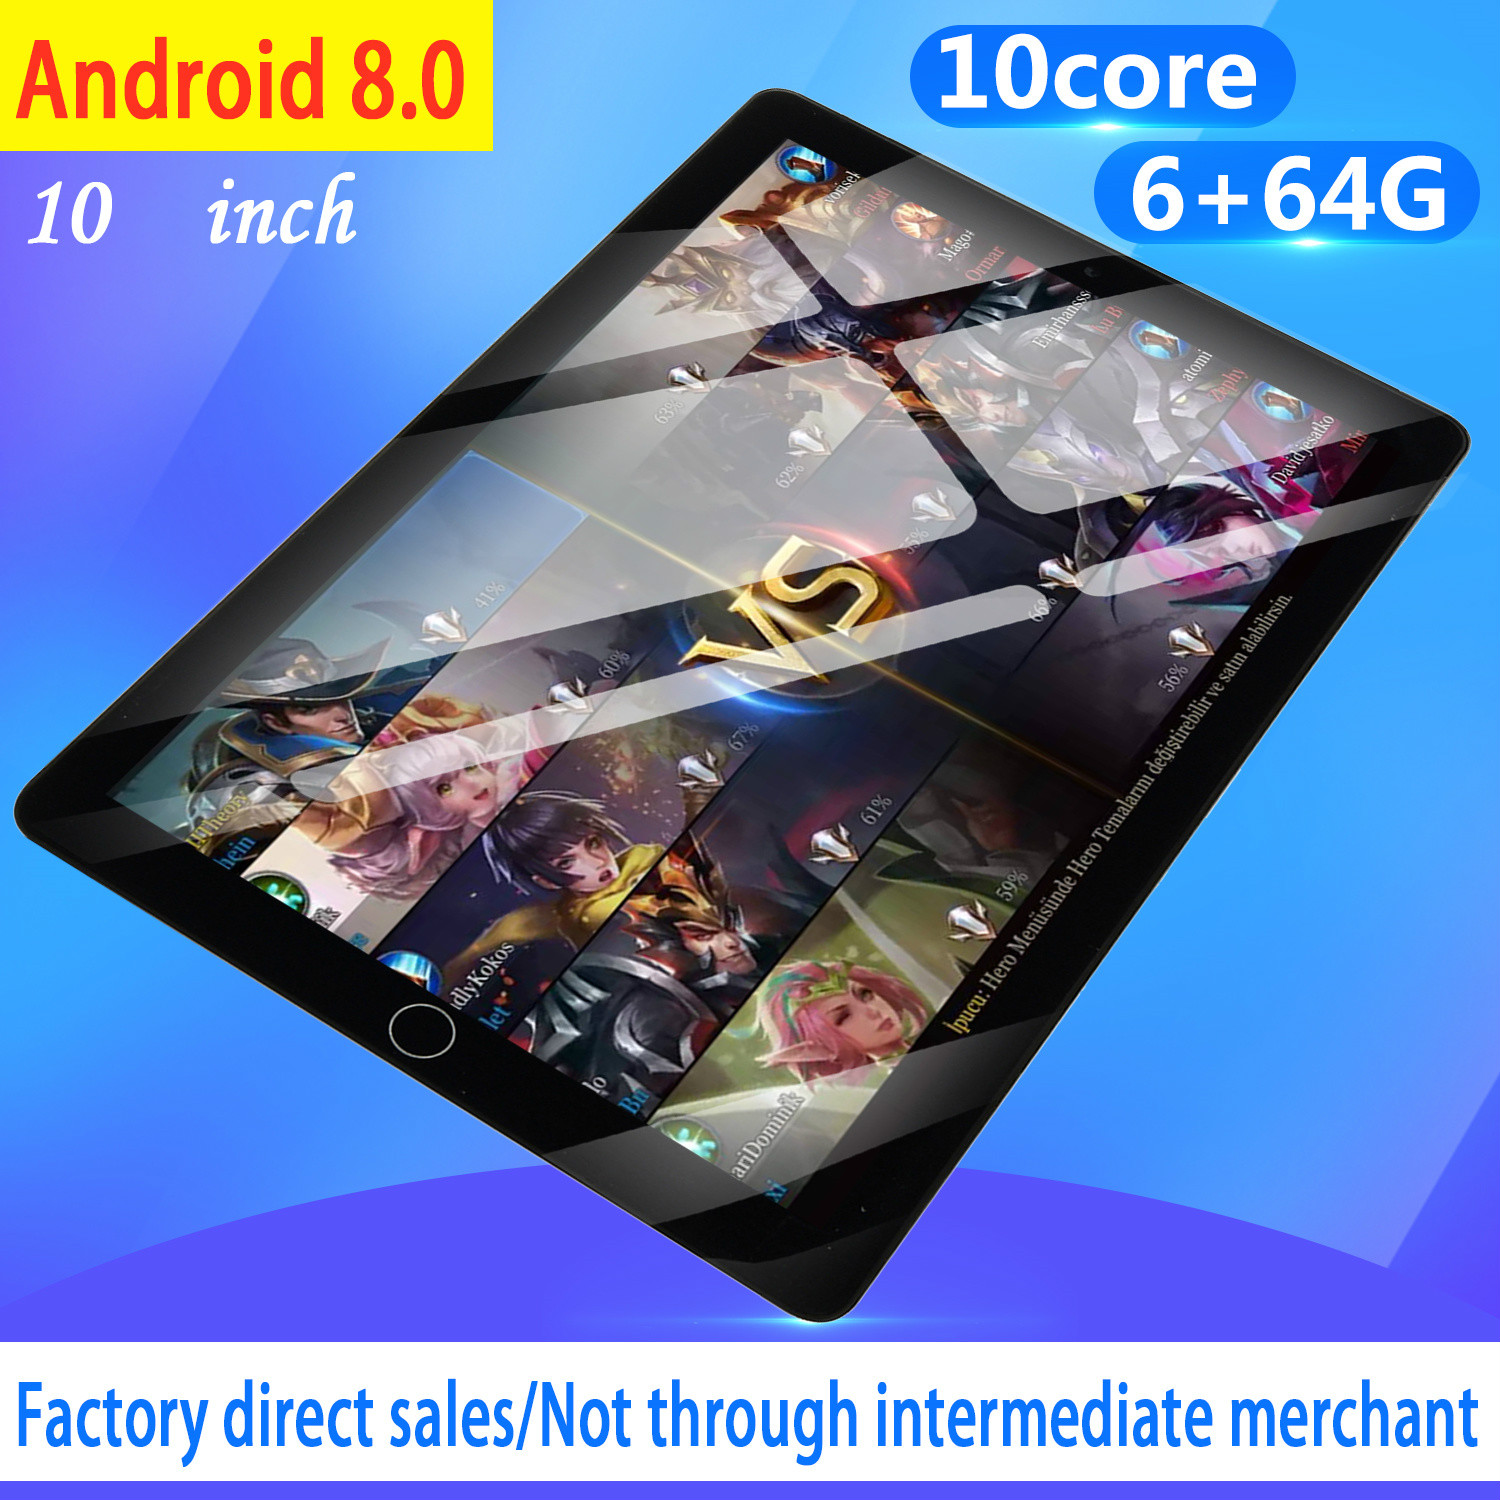 WiFi Tablet PC 12800*800 IPS Screen 10 Inch Ten Core 6G+64G Android 8.0 Dual SIM Dual Camera Tablet GPS Phone Pad 2020